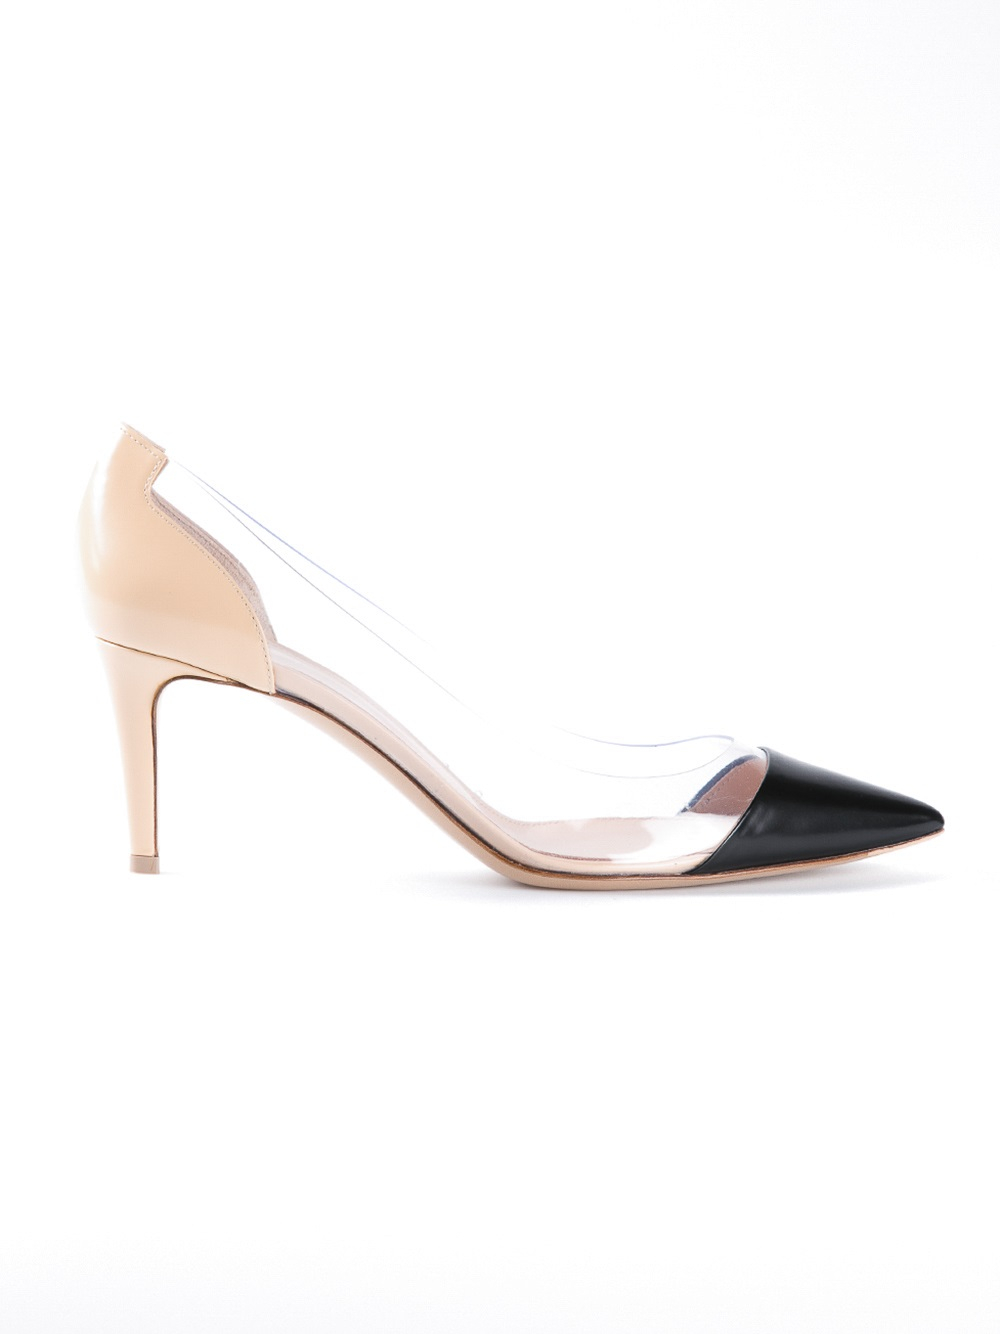 be84e860d0f Gianvito Rossi 70mm Plexy Combo Pump in Black - Lyst